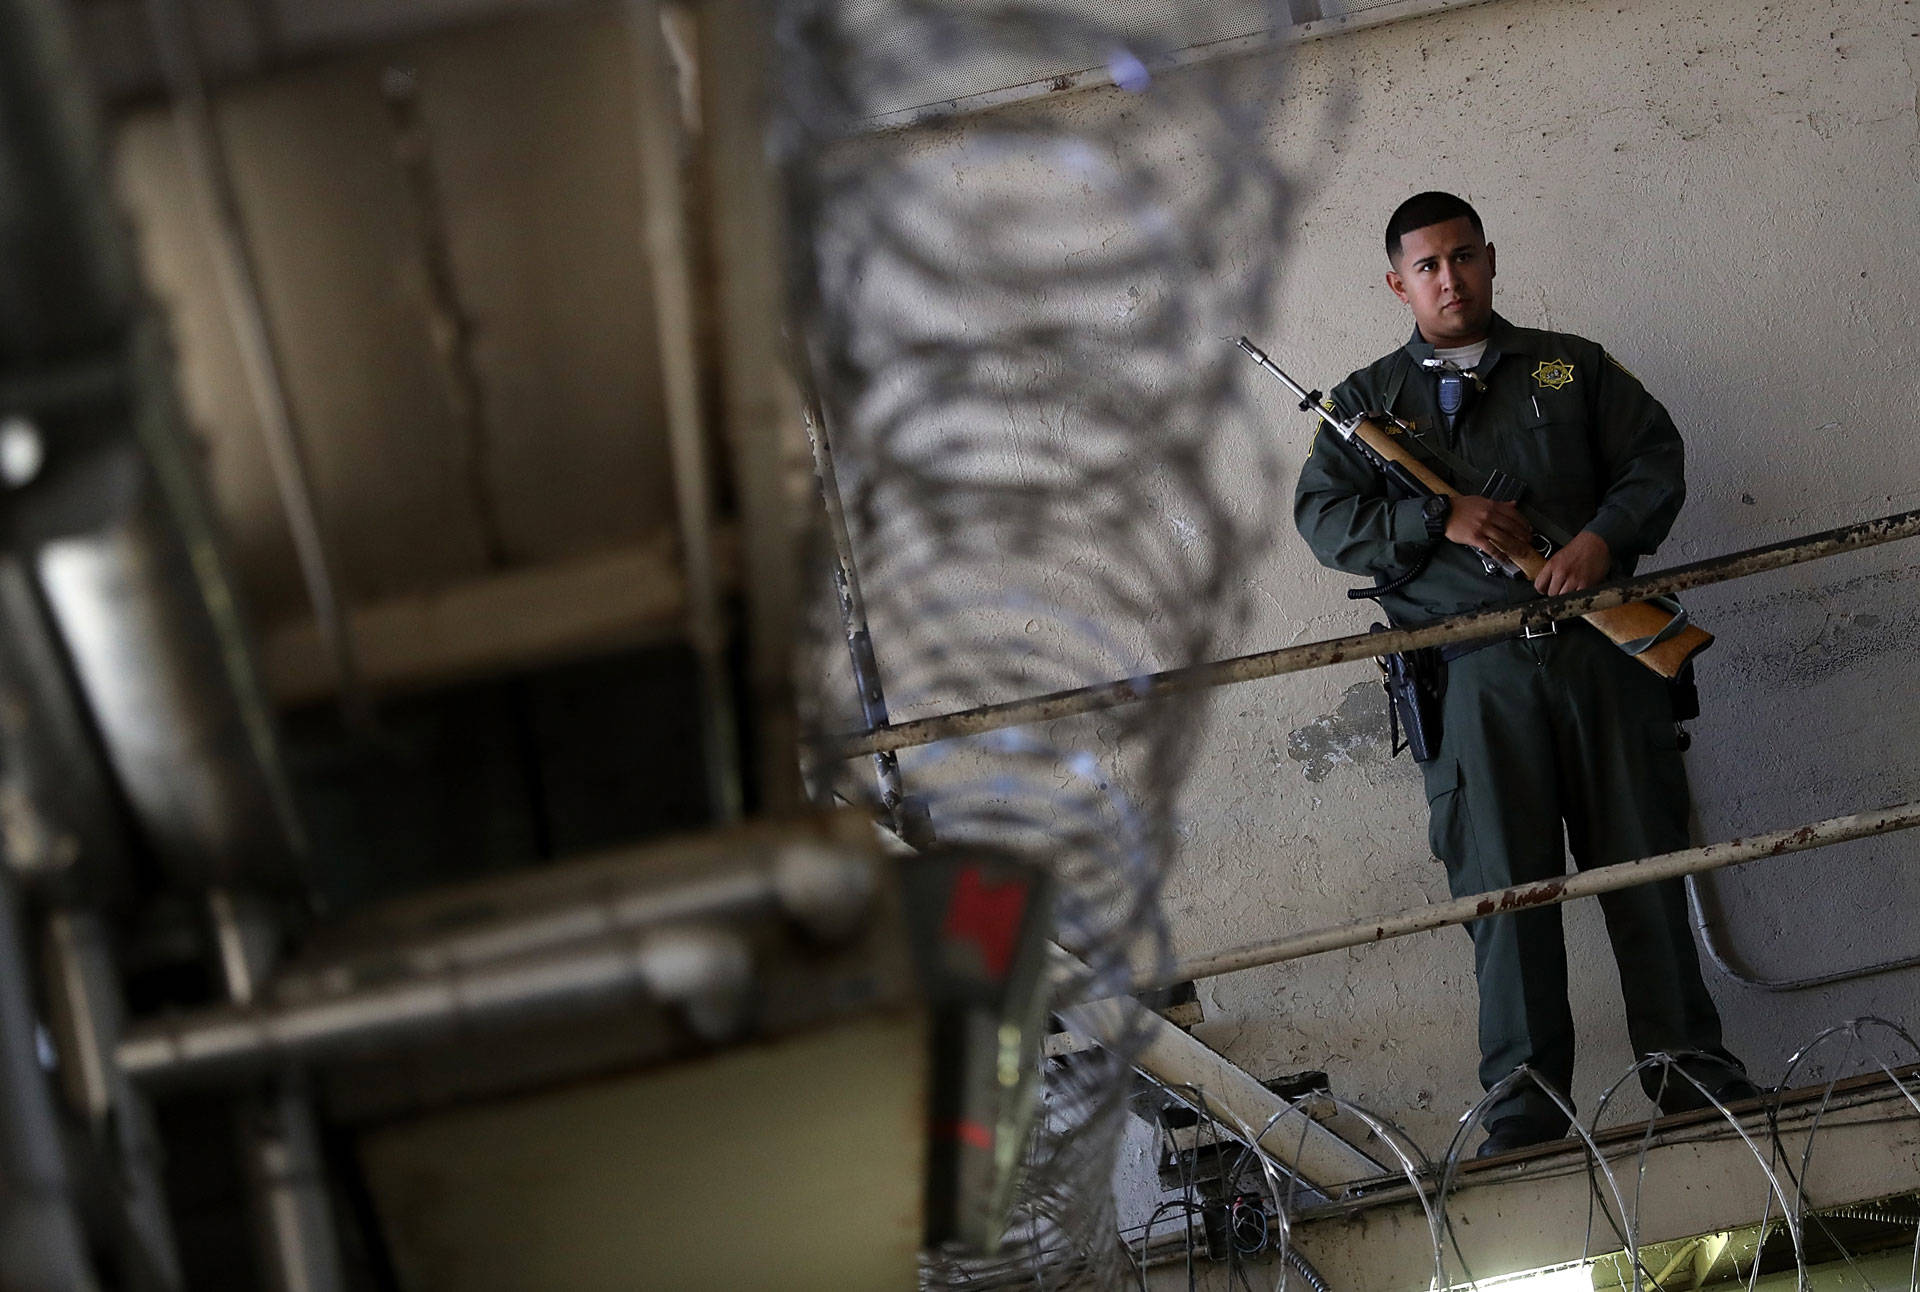 An armed California Department of Corrections and Rehabilitation (CDCR) officer stands guard at San Quentin State Prison in 2016. Justin Sullivan/Getty Images